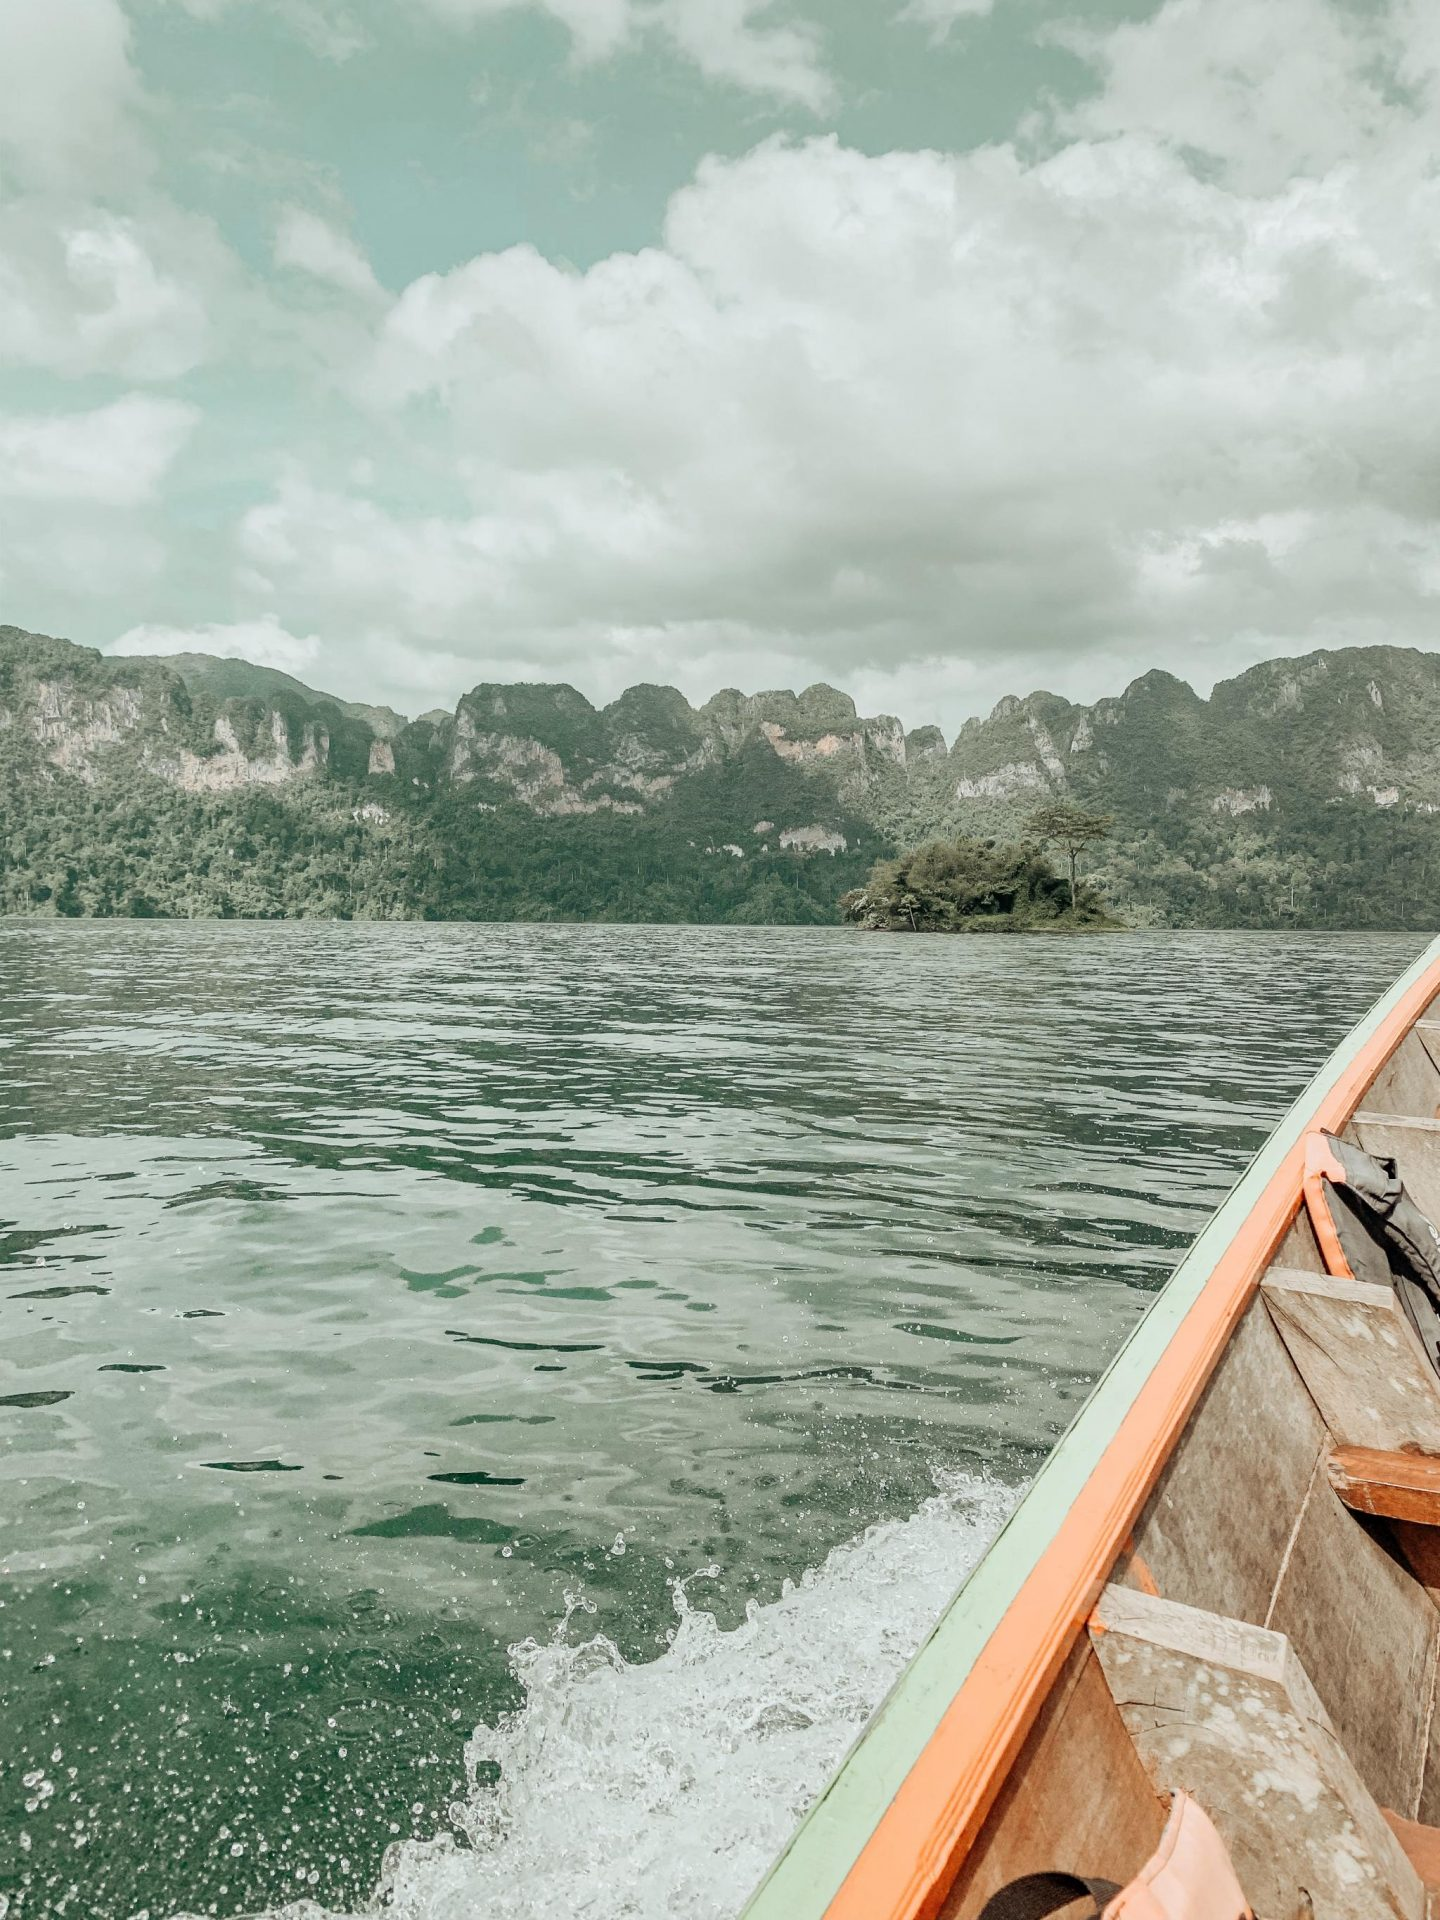 A traditional Thai long-tail boat on Cheow Lan Lake surrounded by limestone mountains